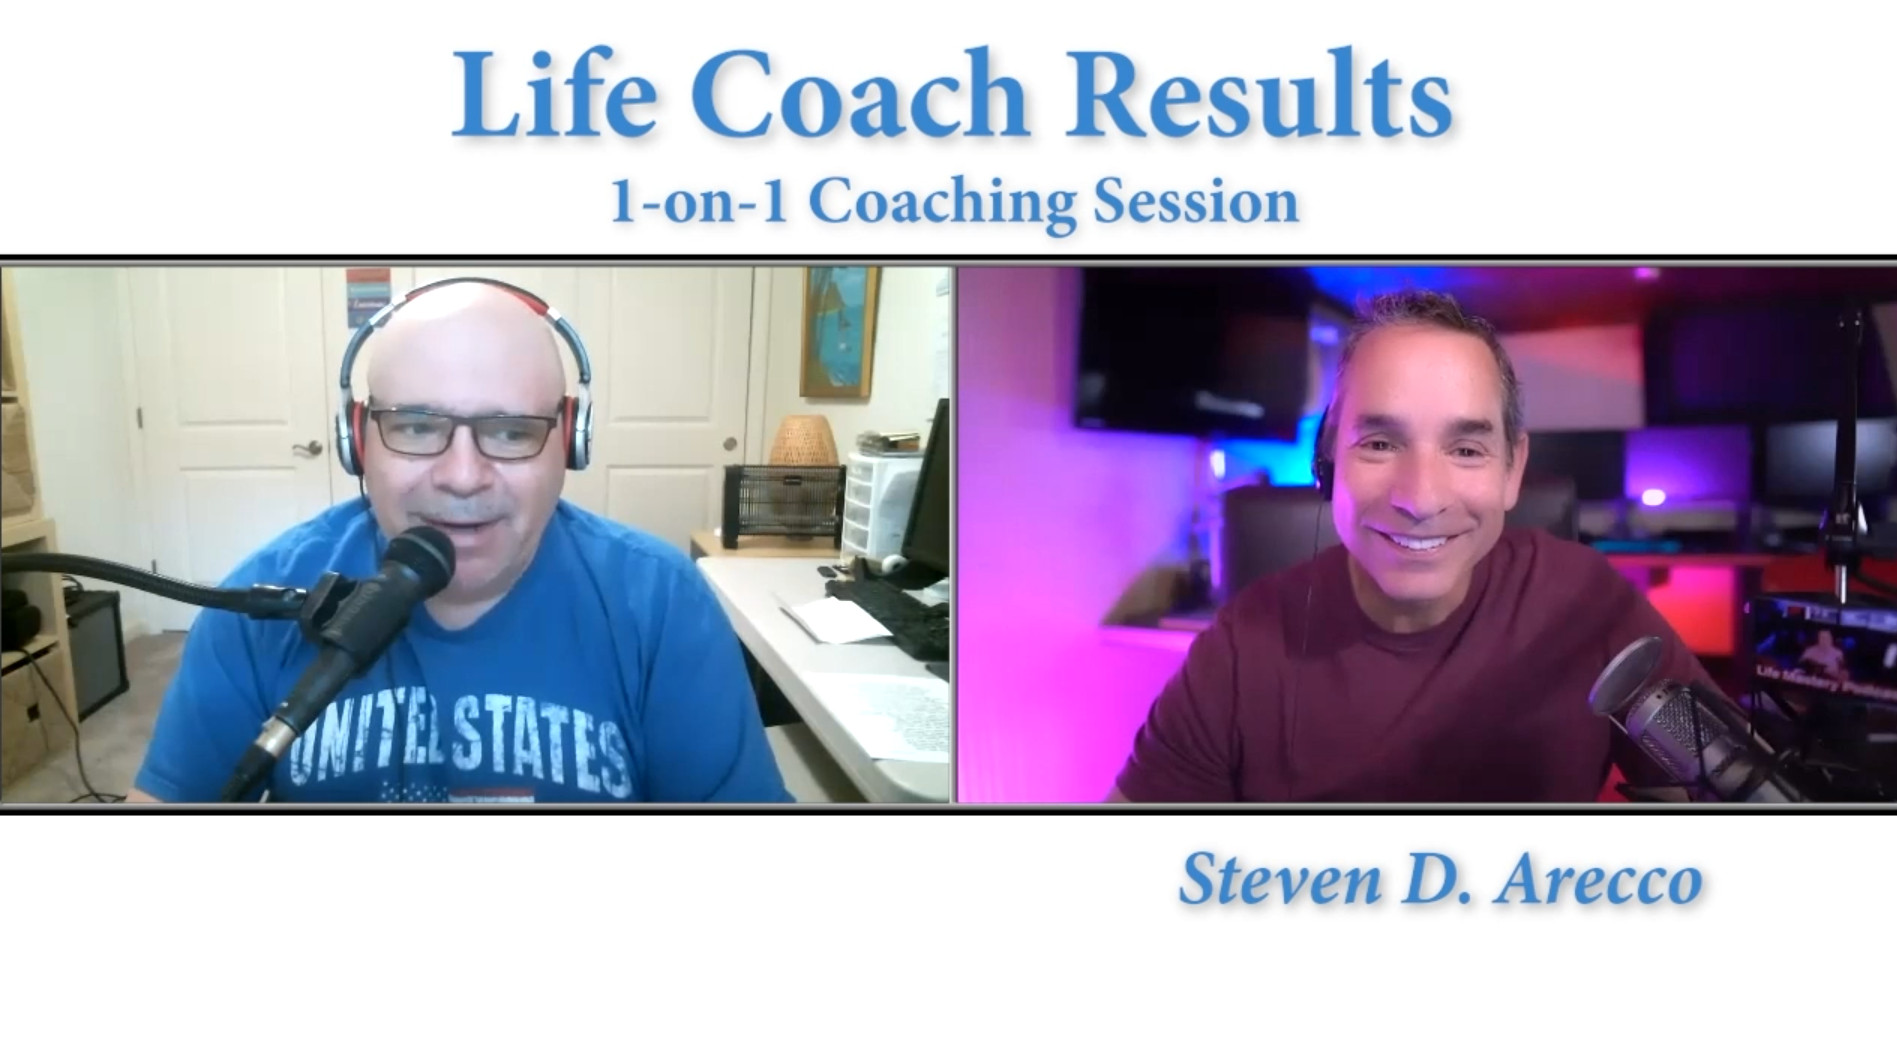 1-on-1 Coaching Sessions - Life Coach Results